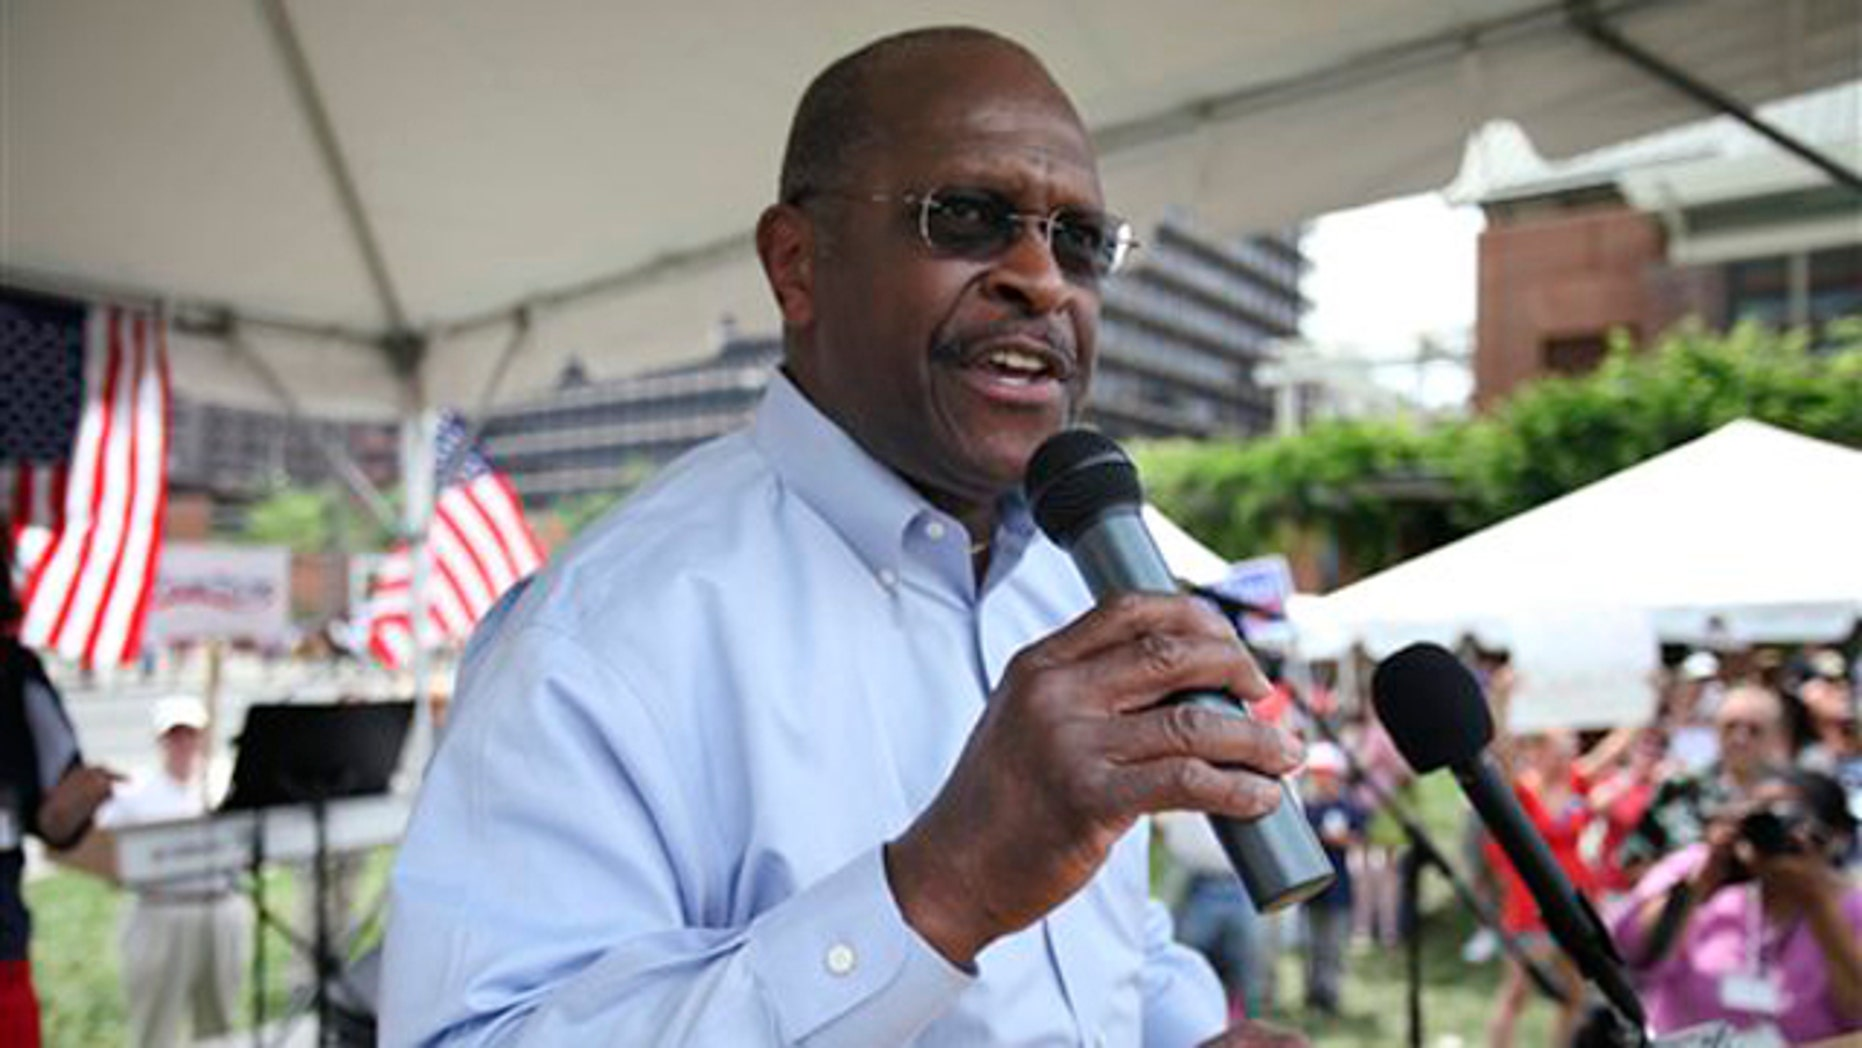 FILE: Republican presidential candidate Herman Cain speaks during a Tea Party rally in Philadelphia.